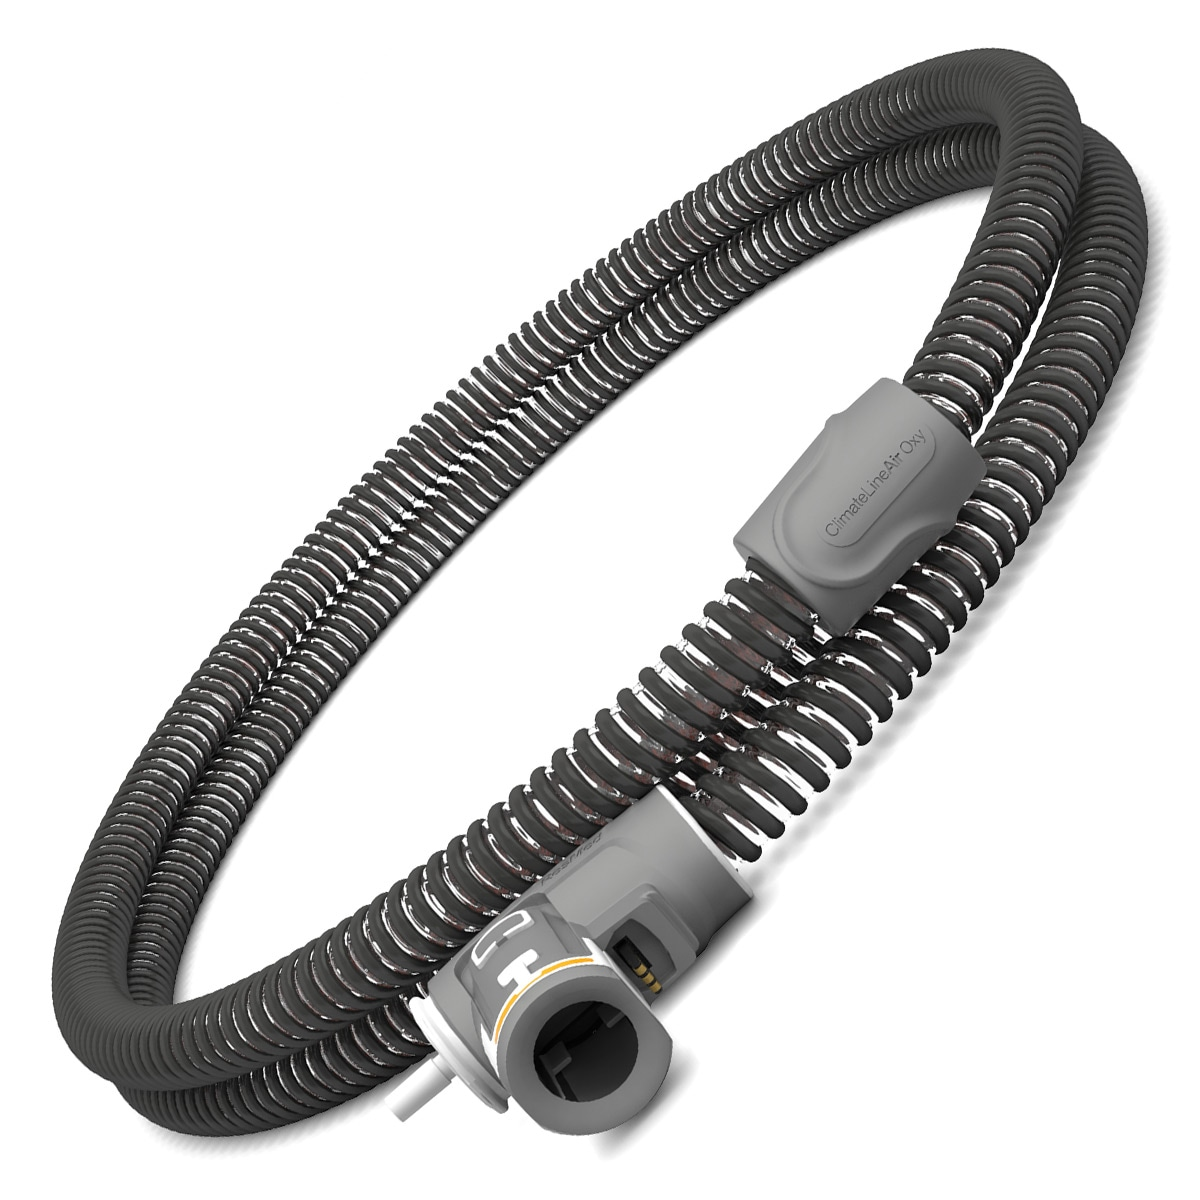 ClimateLineAir OXY Heated Tubing for AirSense™ 10 & AirCurve™ 10 Series CPAP/BiLevel Mac